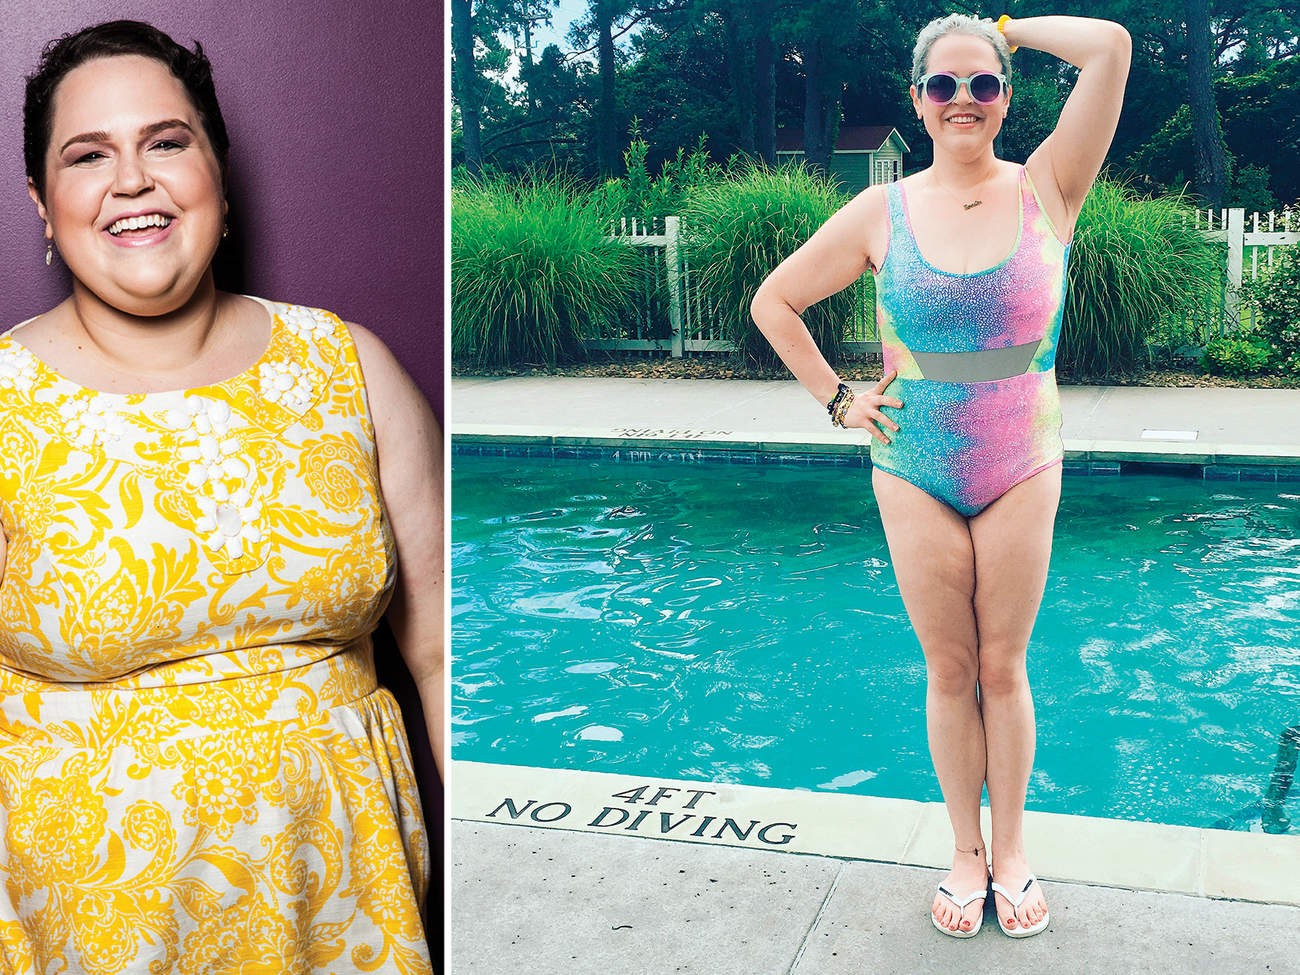 julia-weight-loss-sugery